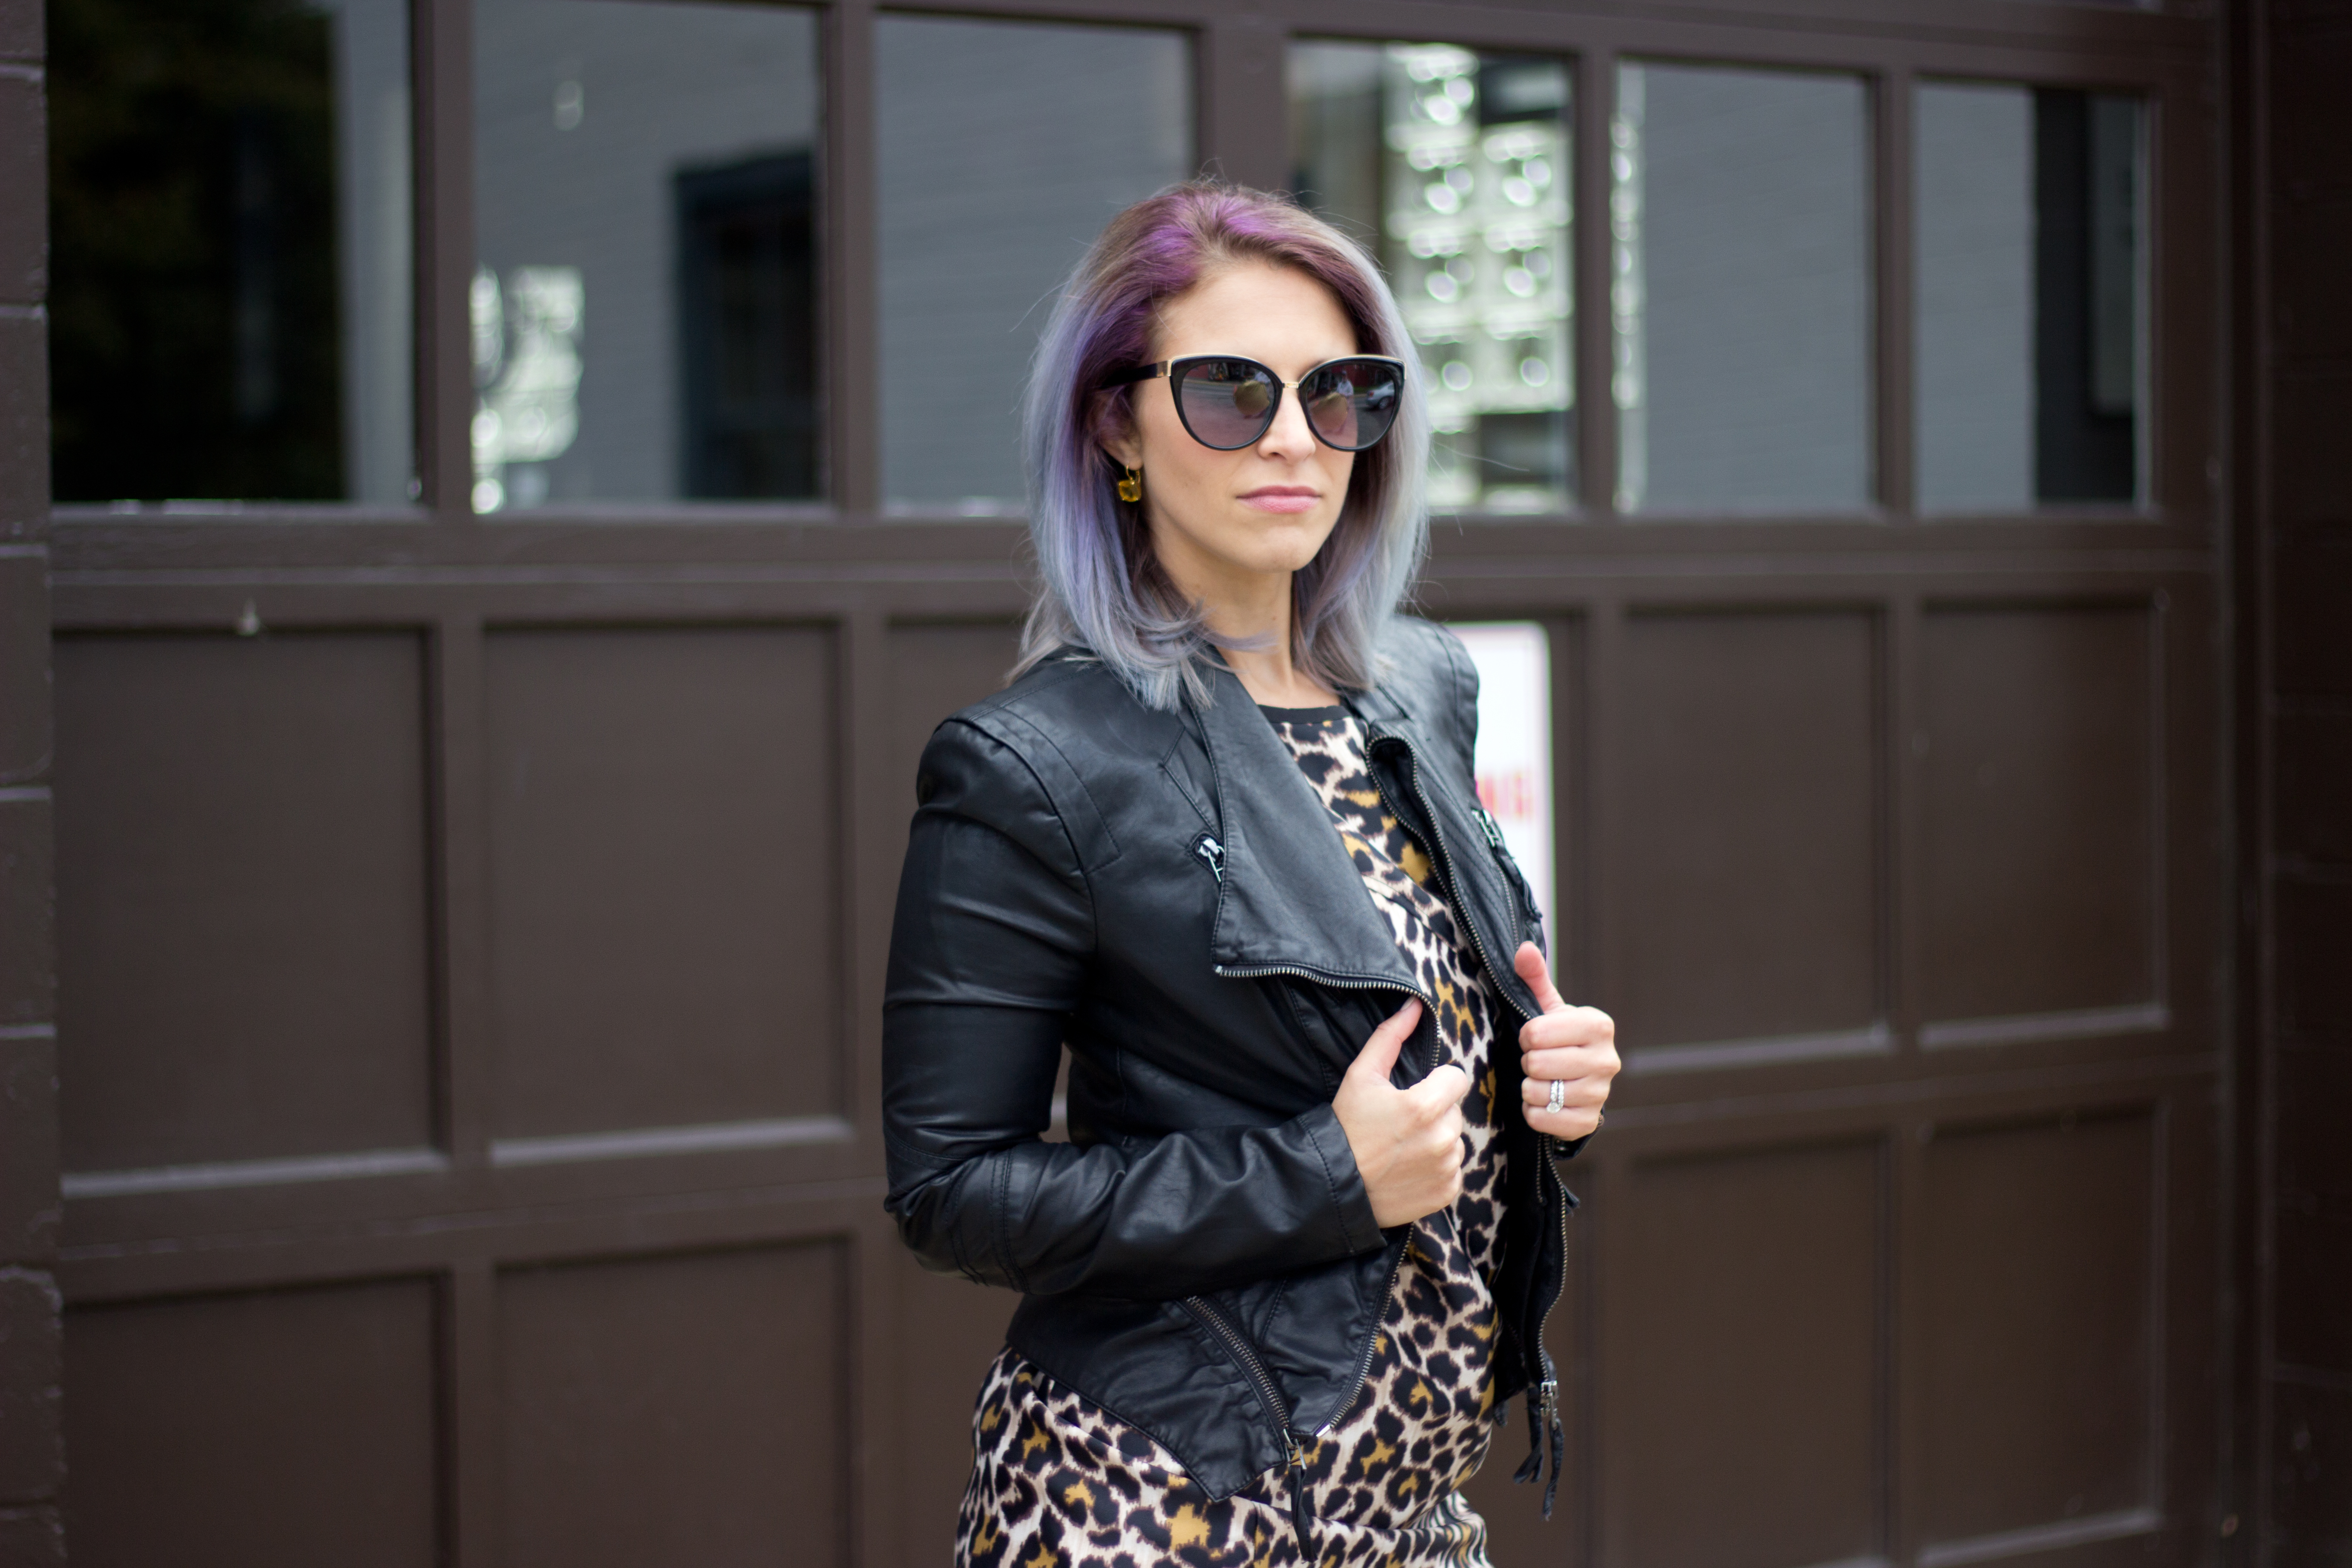 leopard-dress-leather-jacket-sunglasses